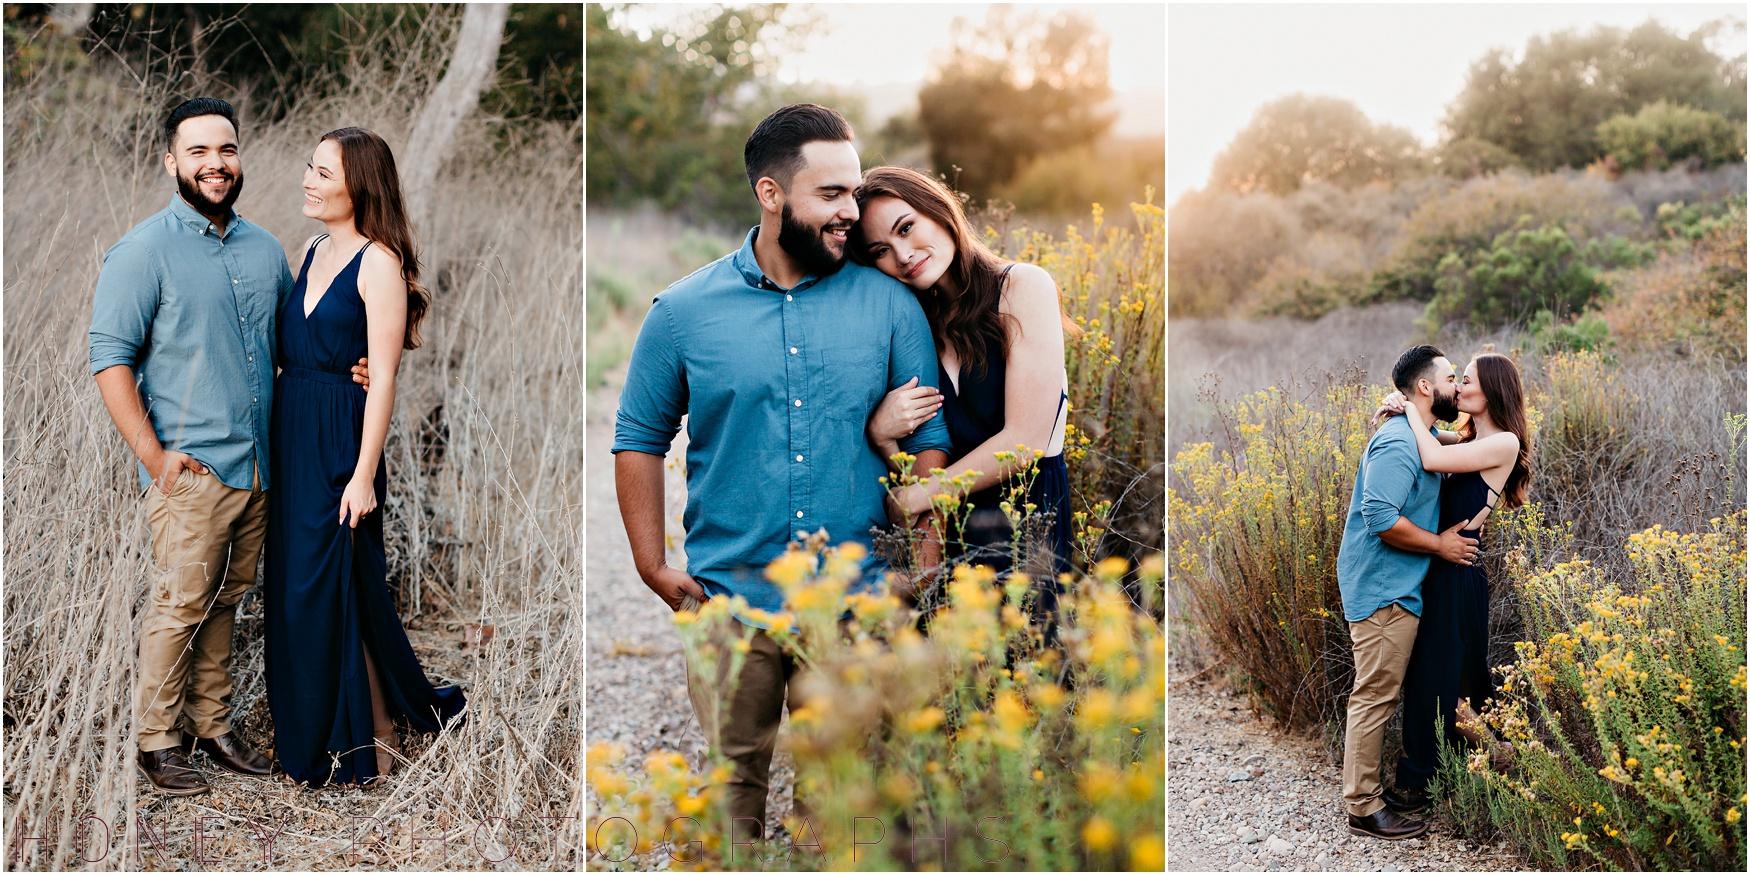 marian_bear_sunset_woods_san_diego_engagement029.jpg